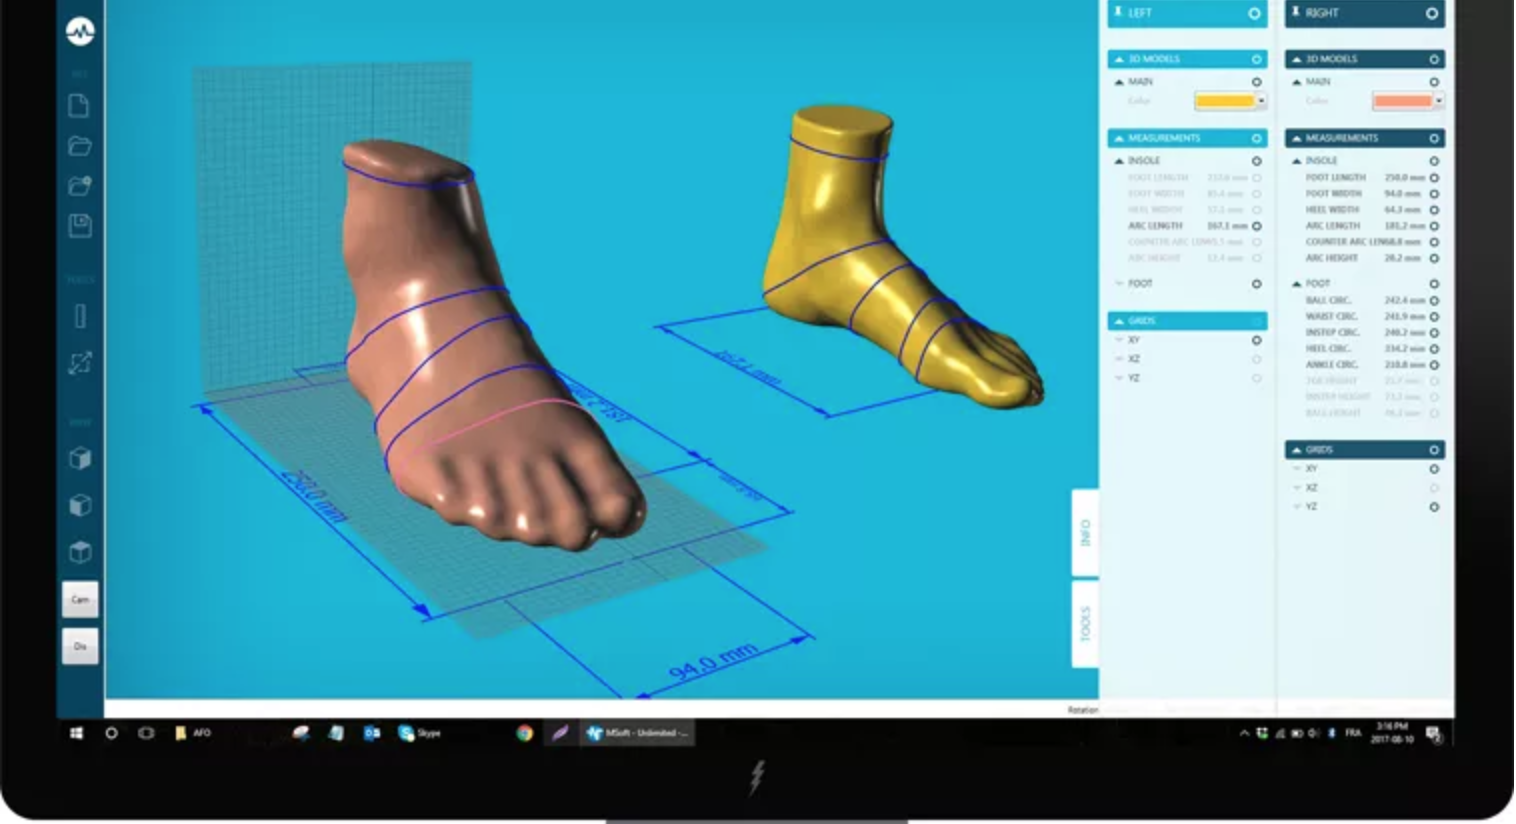 Shining 3D Upgrades EinScan Scanning System, Partners With